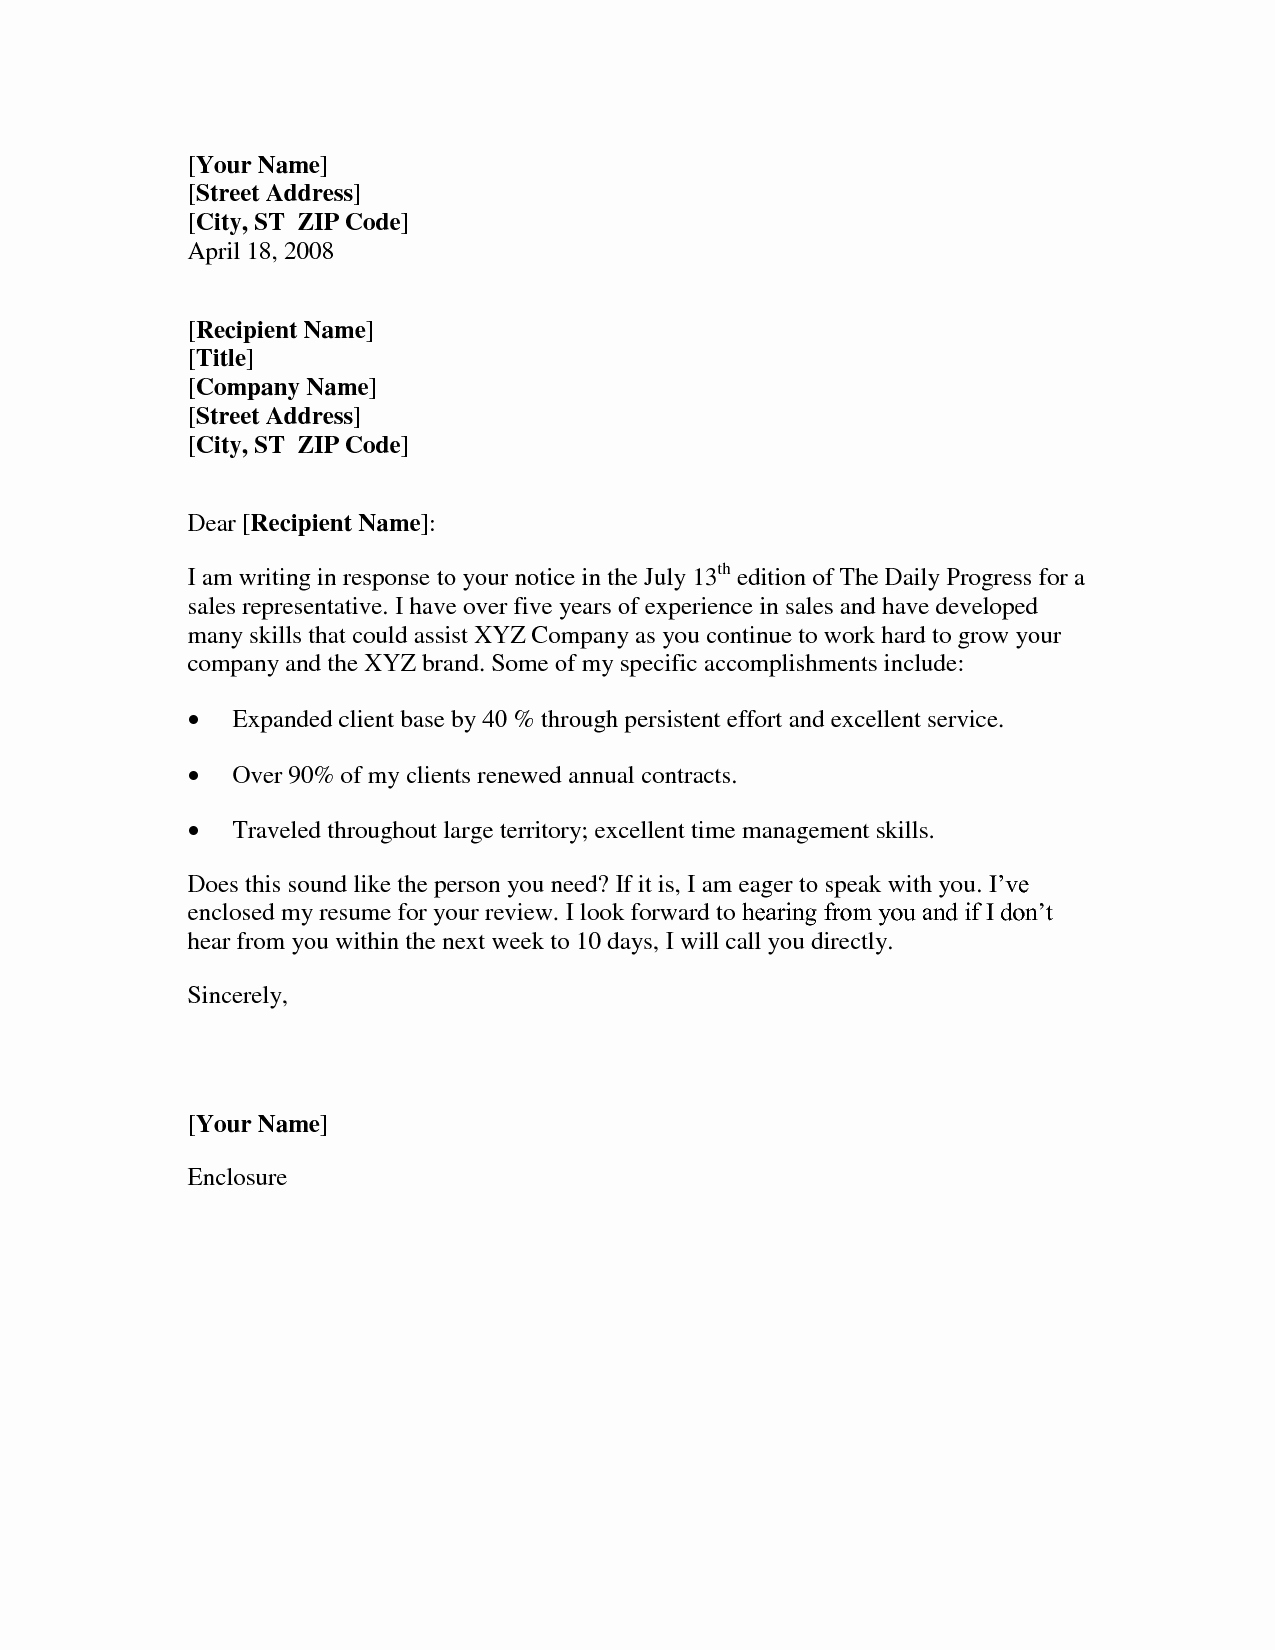 Resume and Cover Letter Templates Beautiful 10 Best Of Basic Cover Letter for Resume Sample